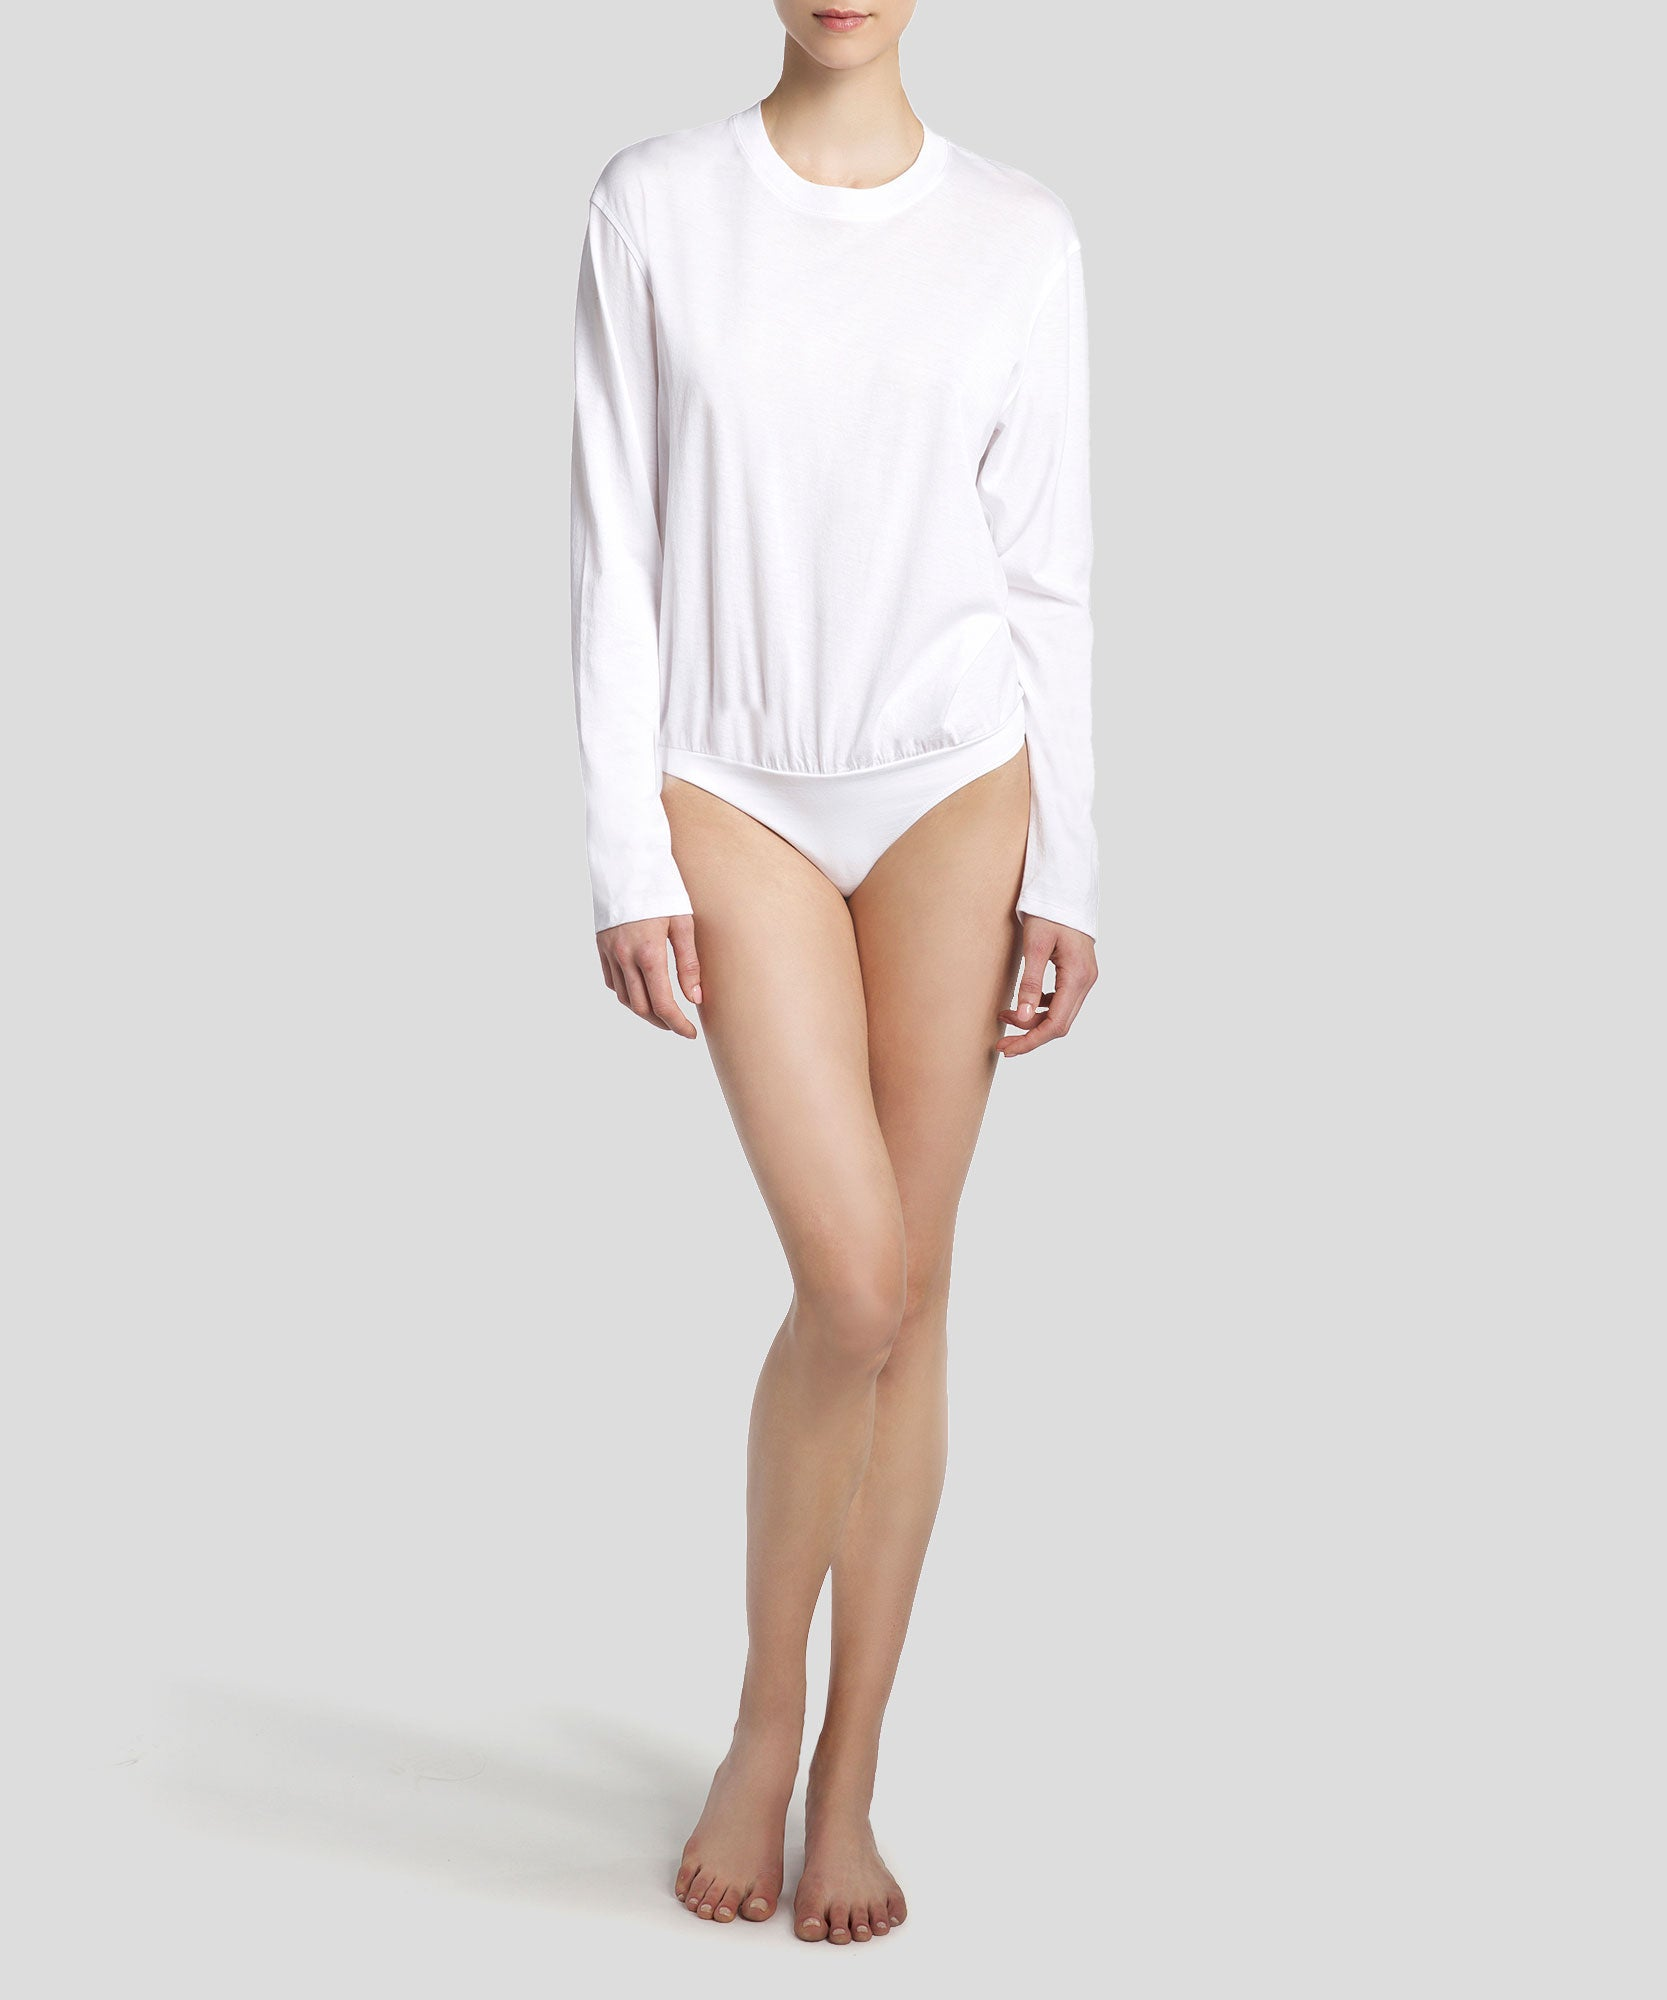 White Long Sleeve Boy Tee Bodysuit - Women's Cotton Bodysuit ATM Anthony Thomas Melillo